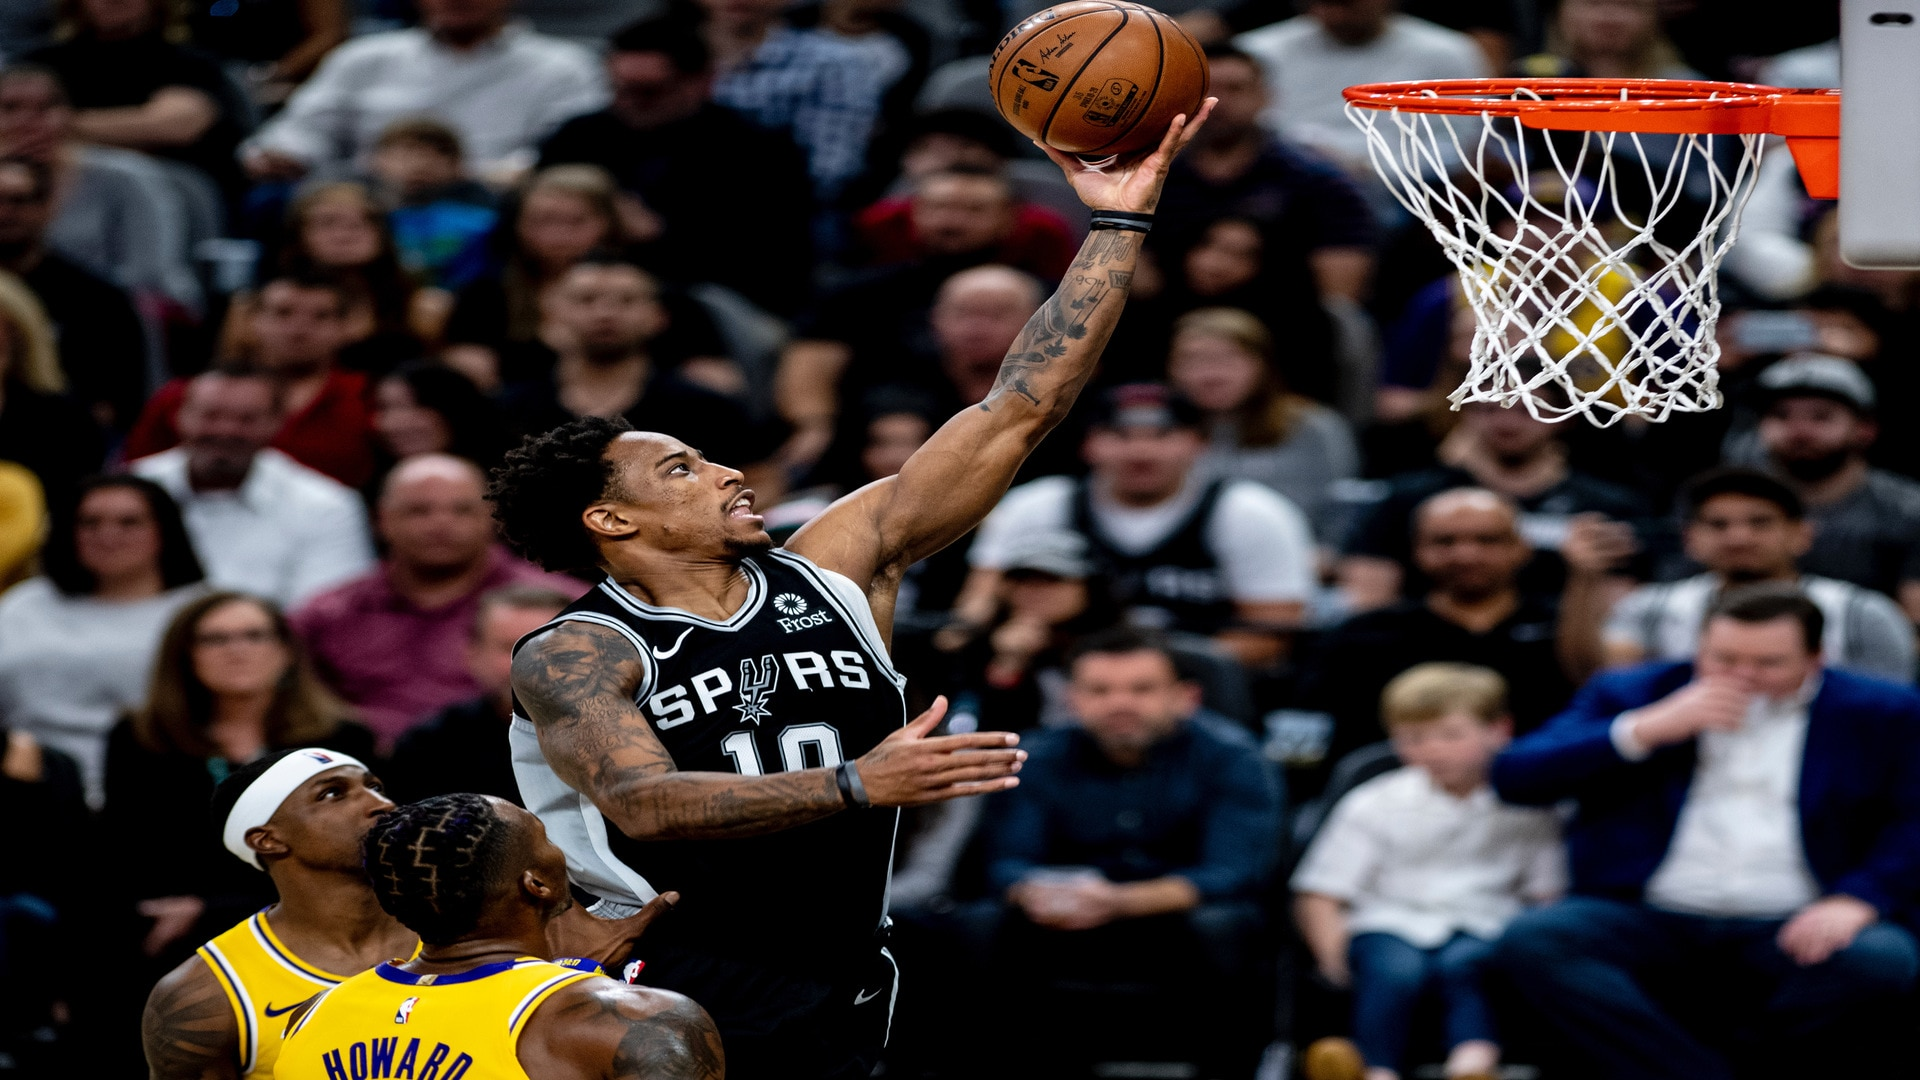 Highlights: Spurs vs. Lakers 11/25